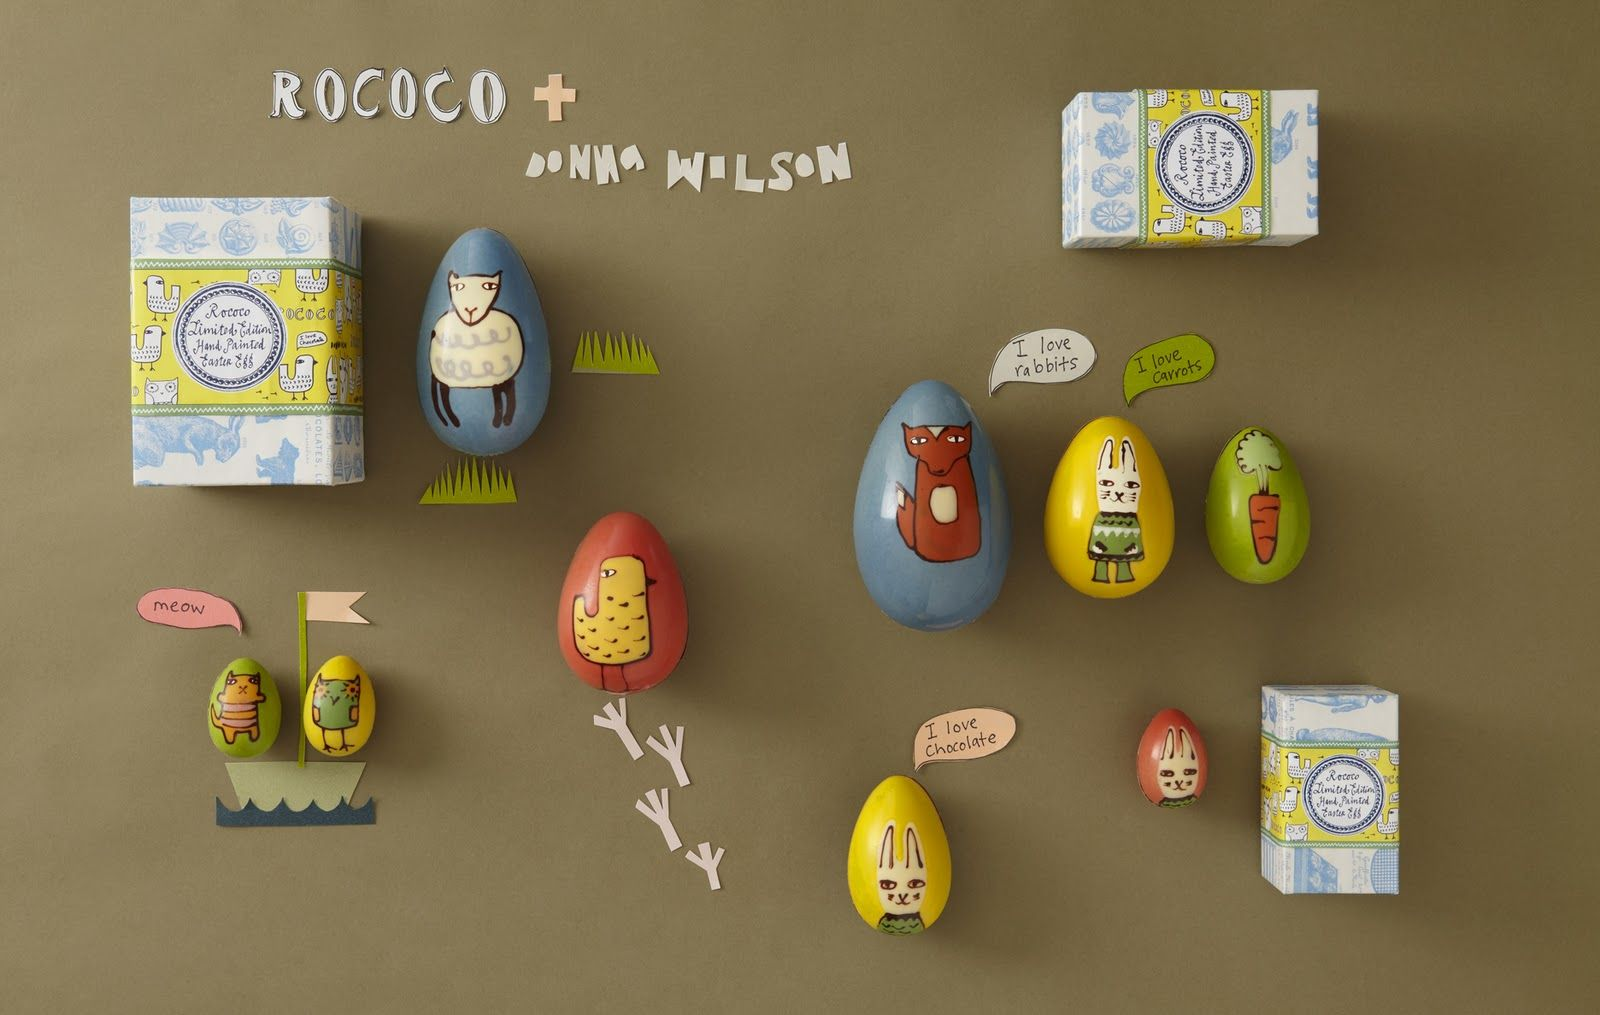 Easter Eggs Collection from Rococo Chocolate. Really love their designs. http://blog.rococochocolates.com/2012/wee-finds-5-brilliant-new-things-im-loving-for-easter-wee-birdy/